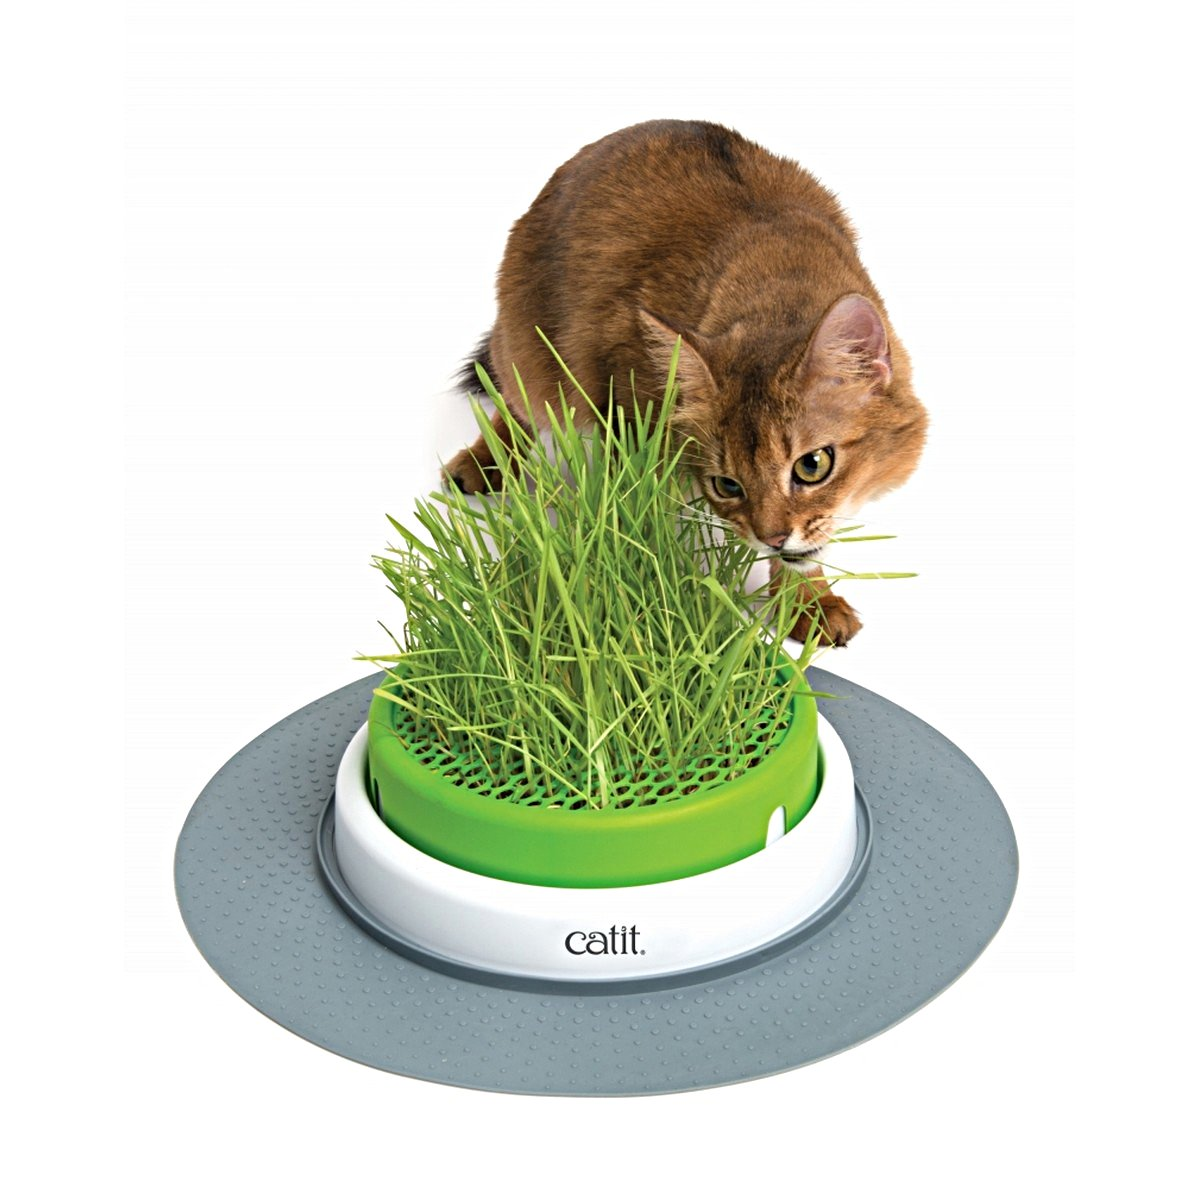 Afbeelding van Cat It Senses 2. Grass Planter